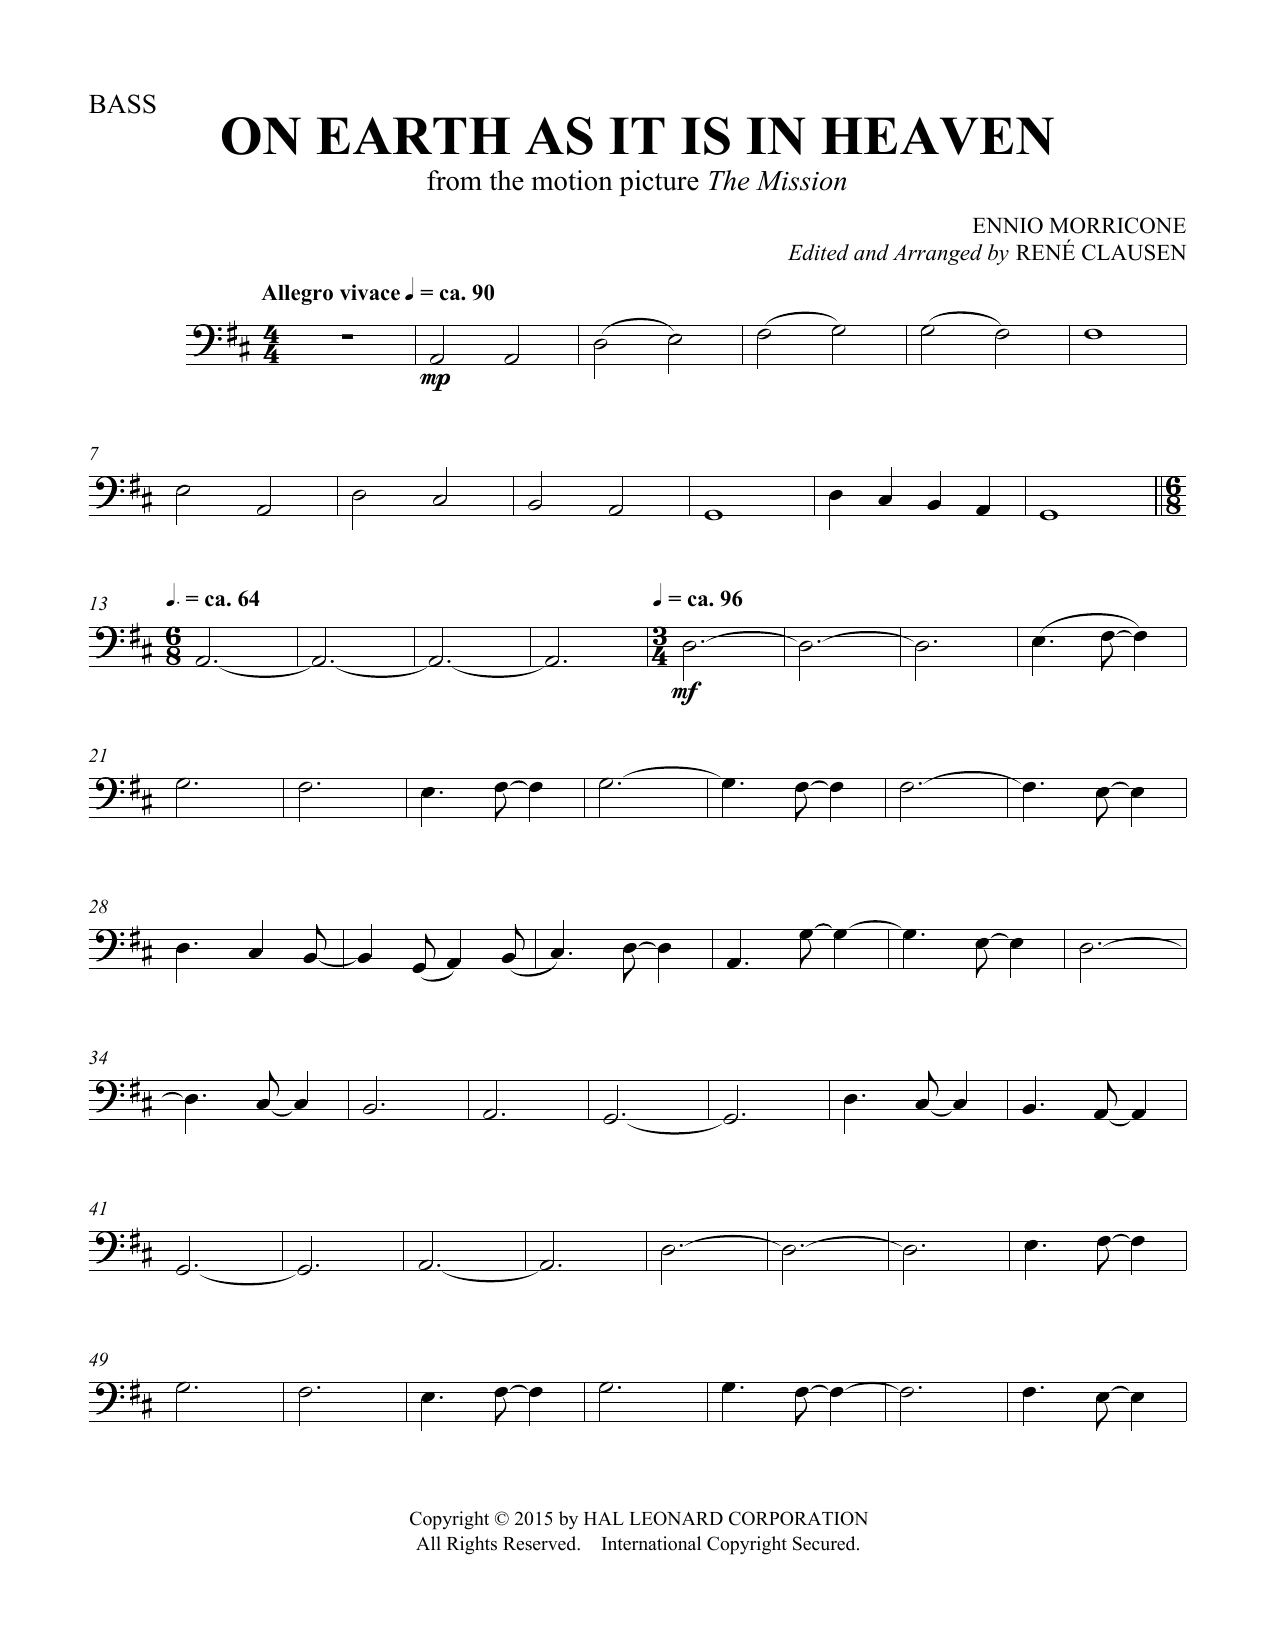 Rene Clausen On Earth As It Is In Heaven - Double Bass sheet music notes and chords. Download Printable PDF.